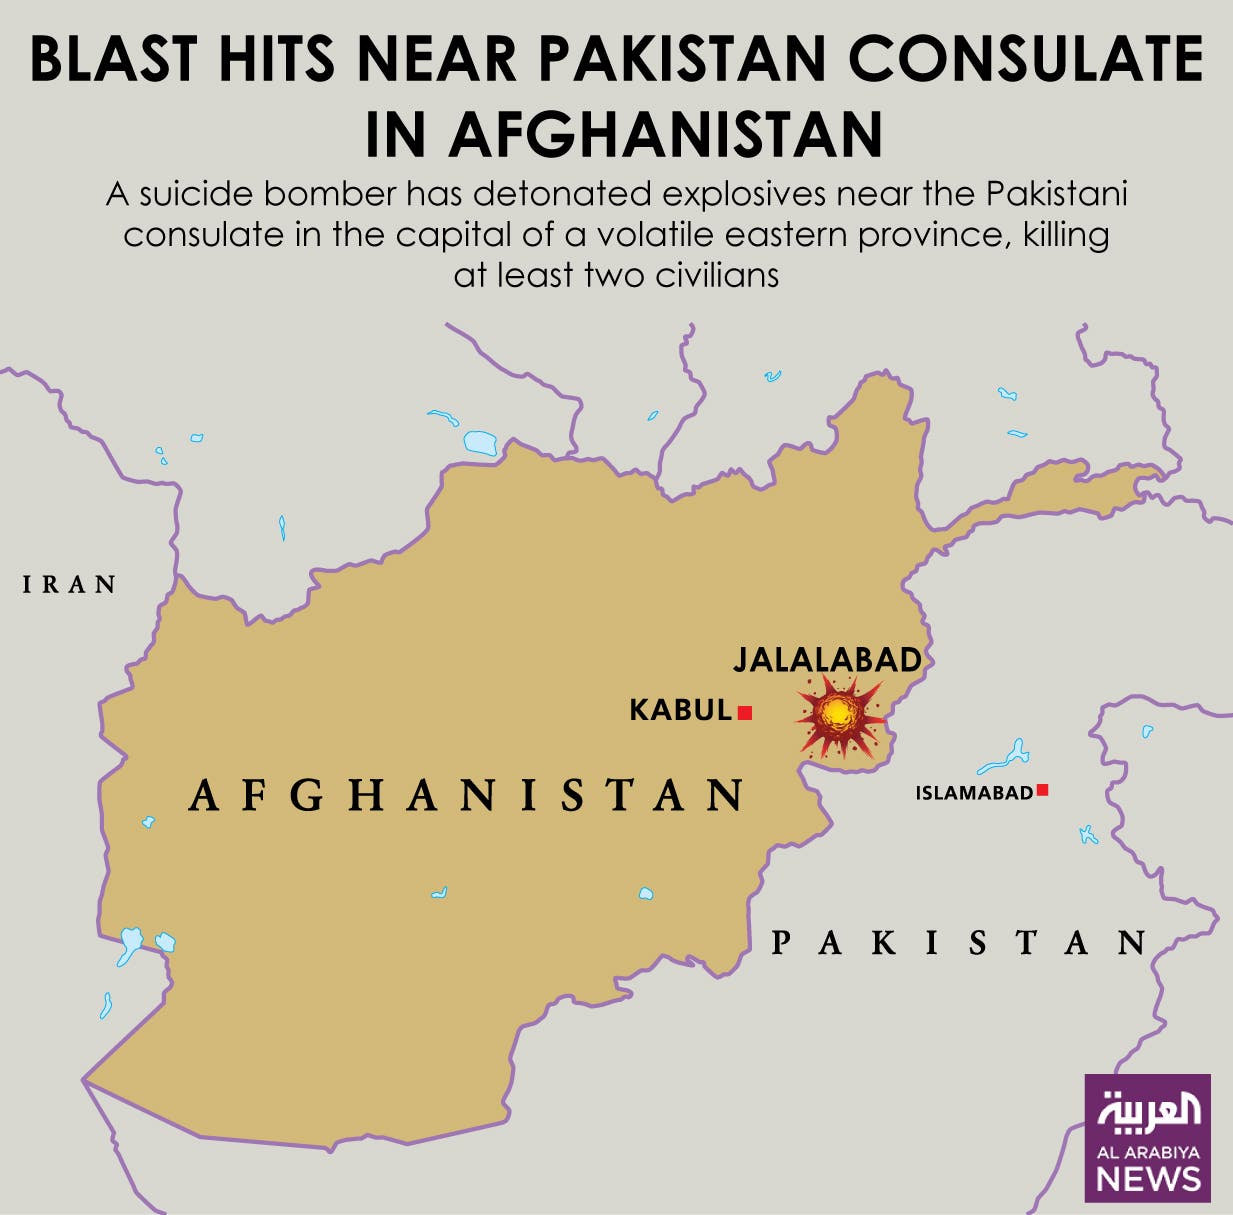 Infographic: Blast hits near Pakistan consulate in Afghanistan